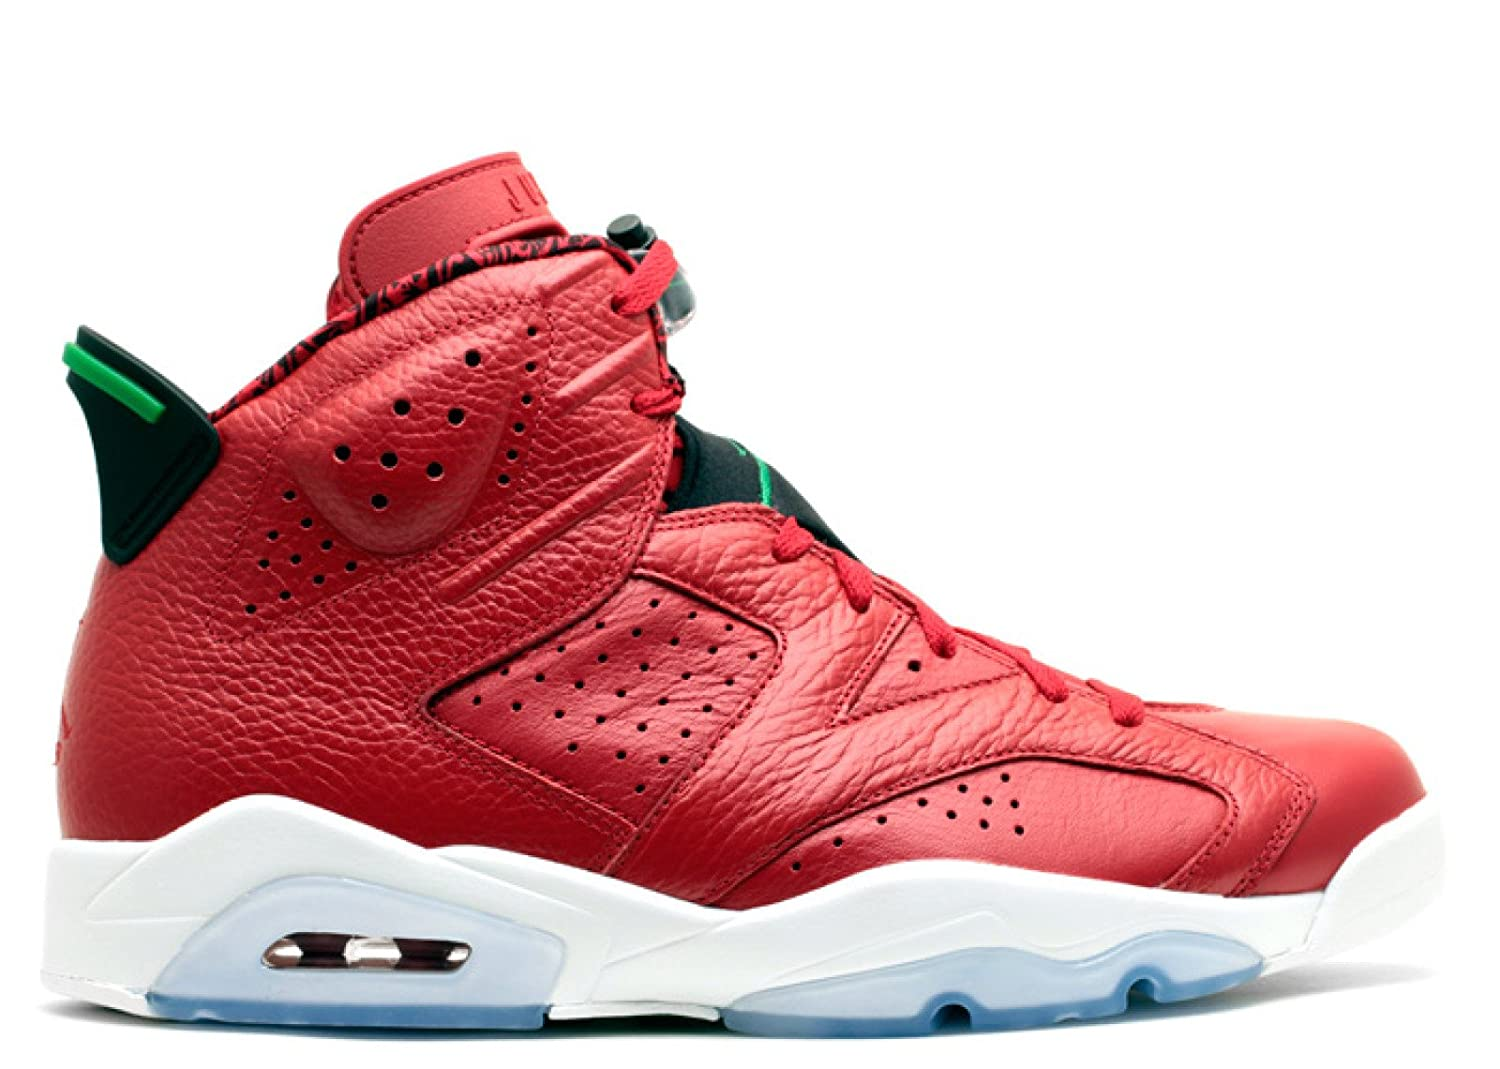 the best attitude 2517f 1a1d3 Amazon.com   Nike Mens Air Jordan 6 Retro Spizike History of Spizike  Varsity Red Classic Green-Wht Leather Basketball Shoes Size 11   Basketball